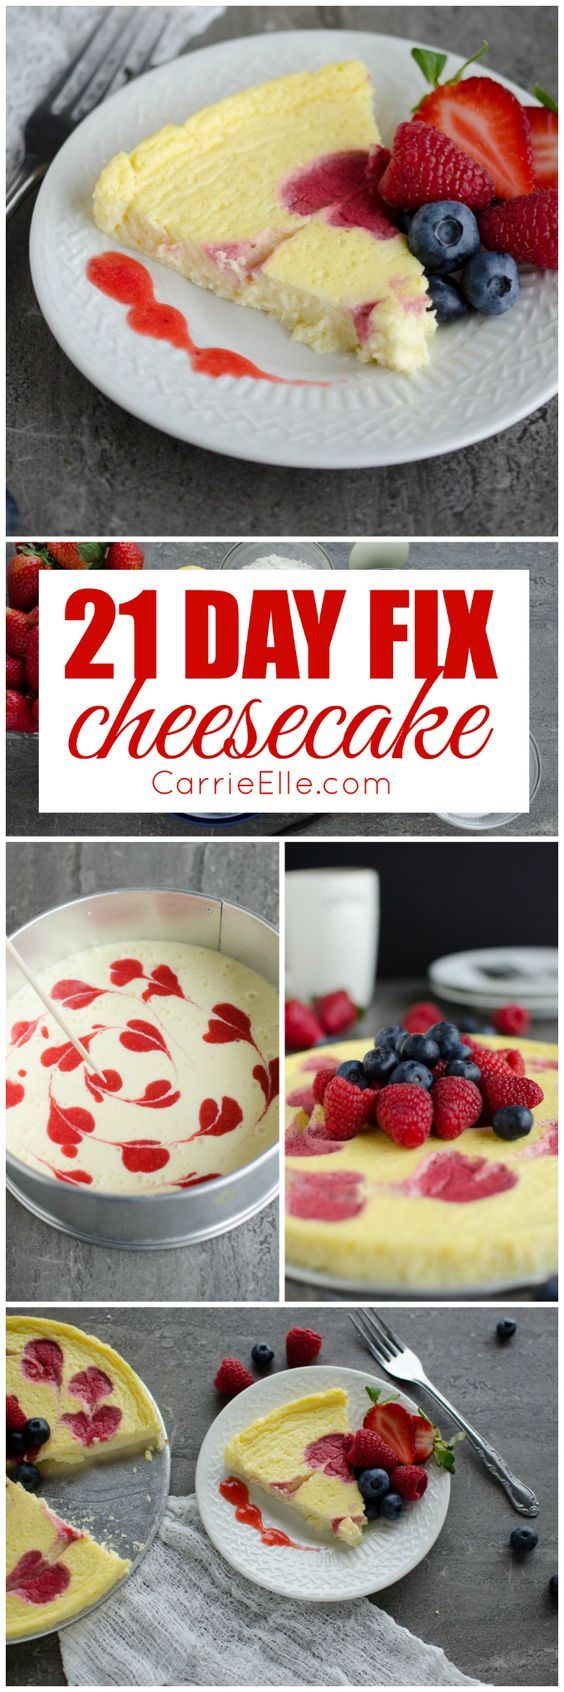 This 21 Day Fix cheesecake recipe is perfect when you want to indulge guilt-free. Change it up by switching out the fruit!